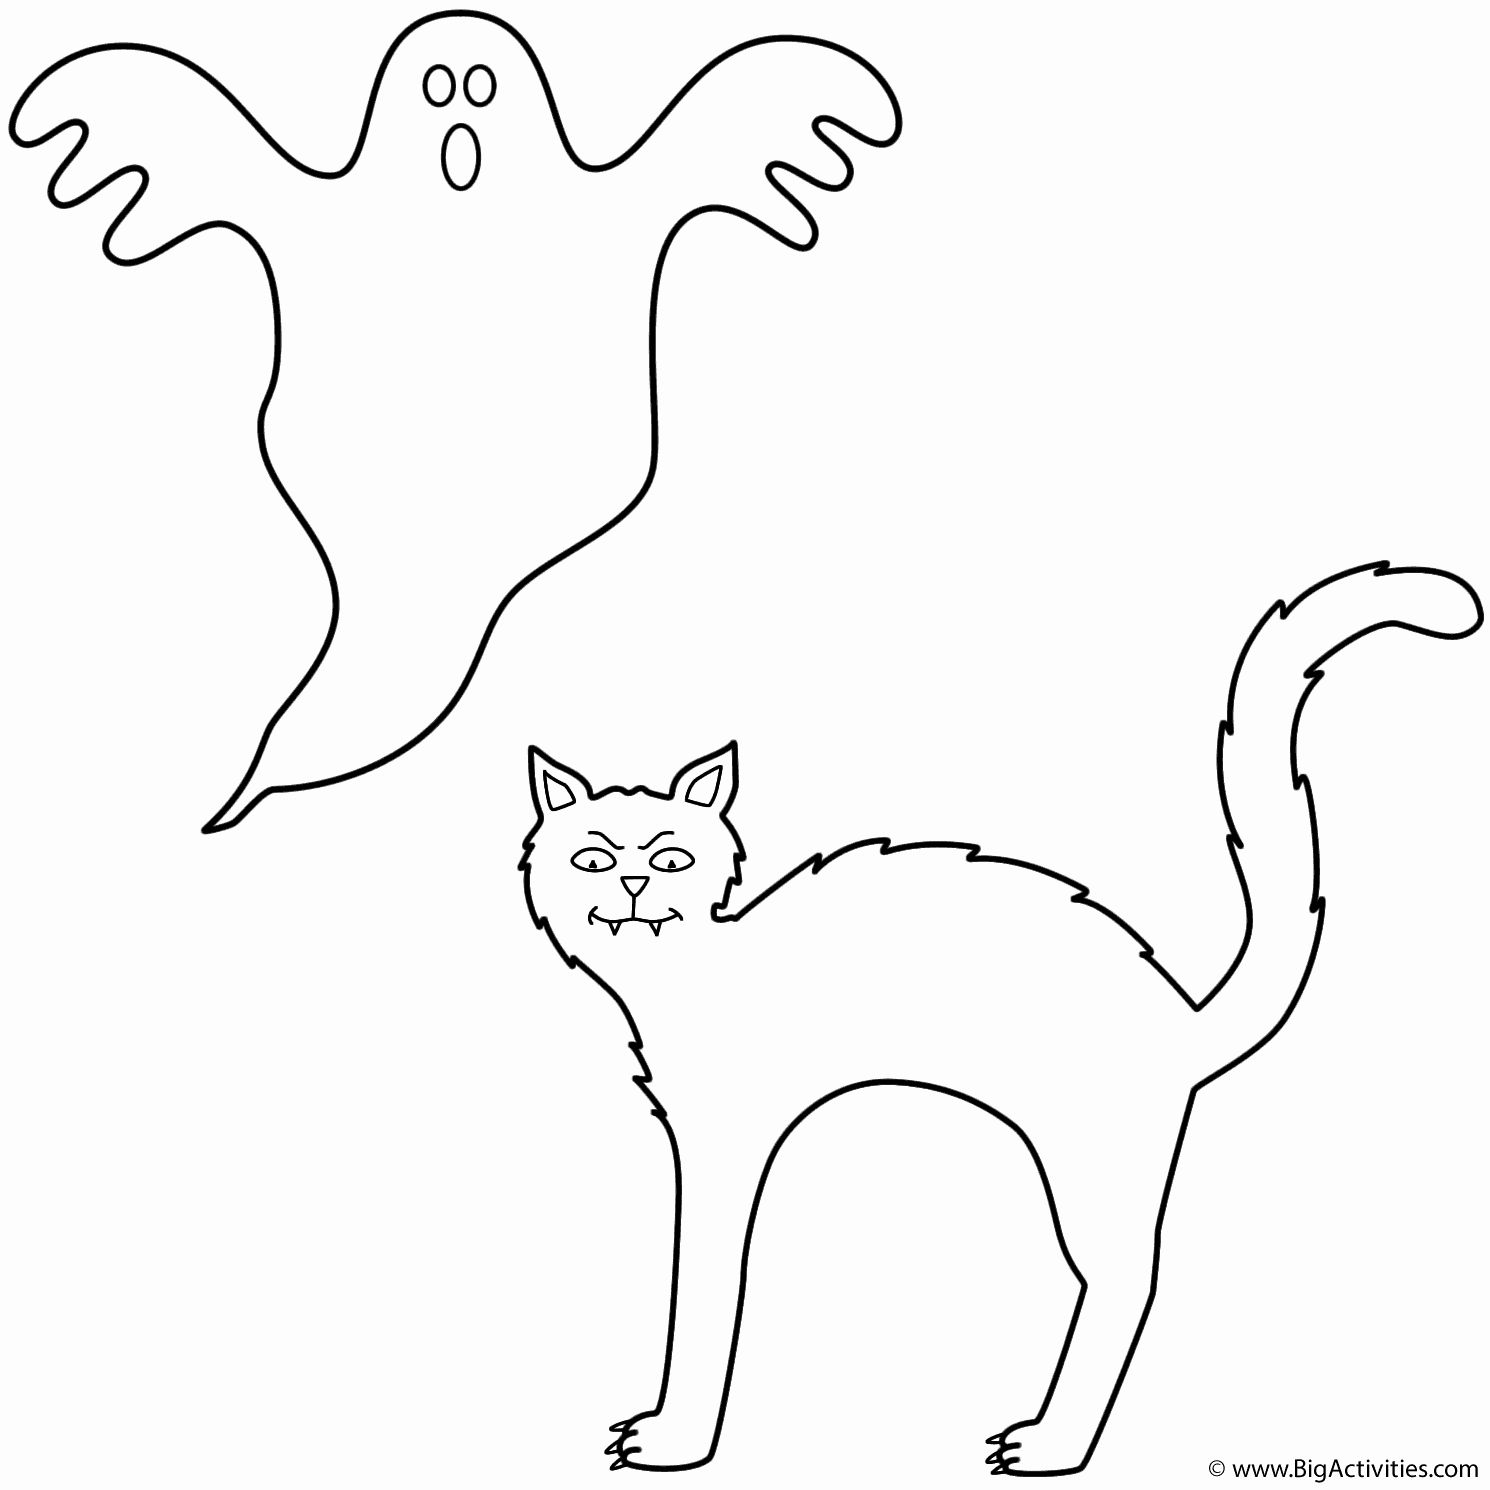 Black Cat Coloring Pages Fresh Black Cat With Ghost Coloring Page Halloween In 2020 Halloween Coloring Pages Halloween Activities For Kids Halloween Coloring